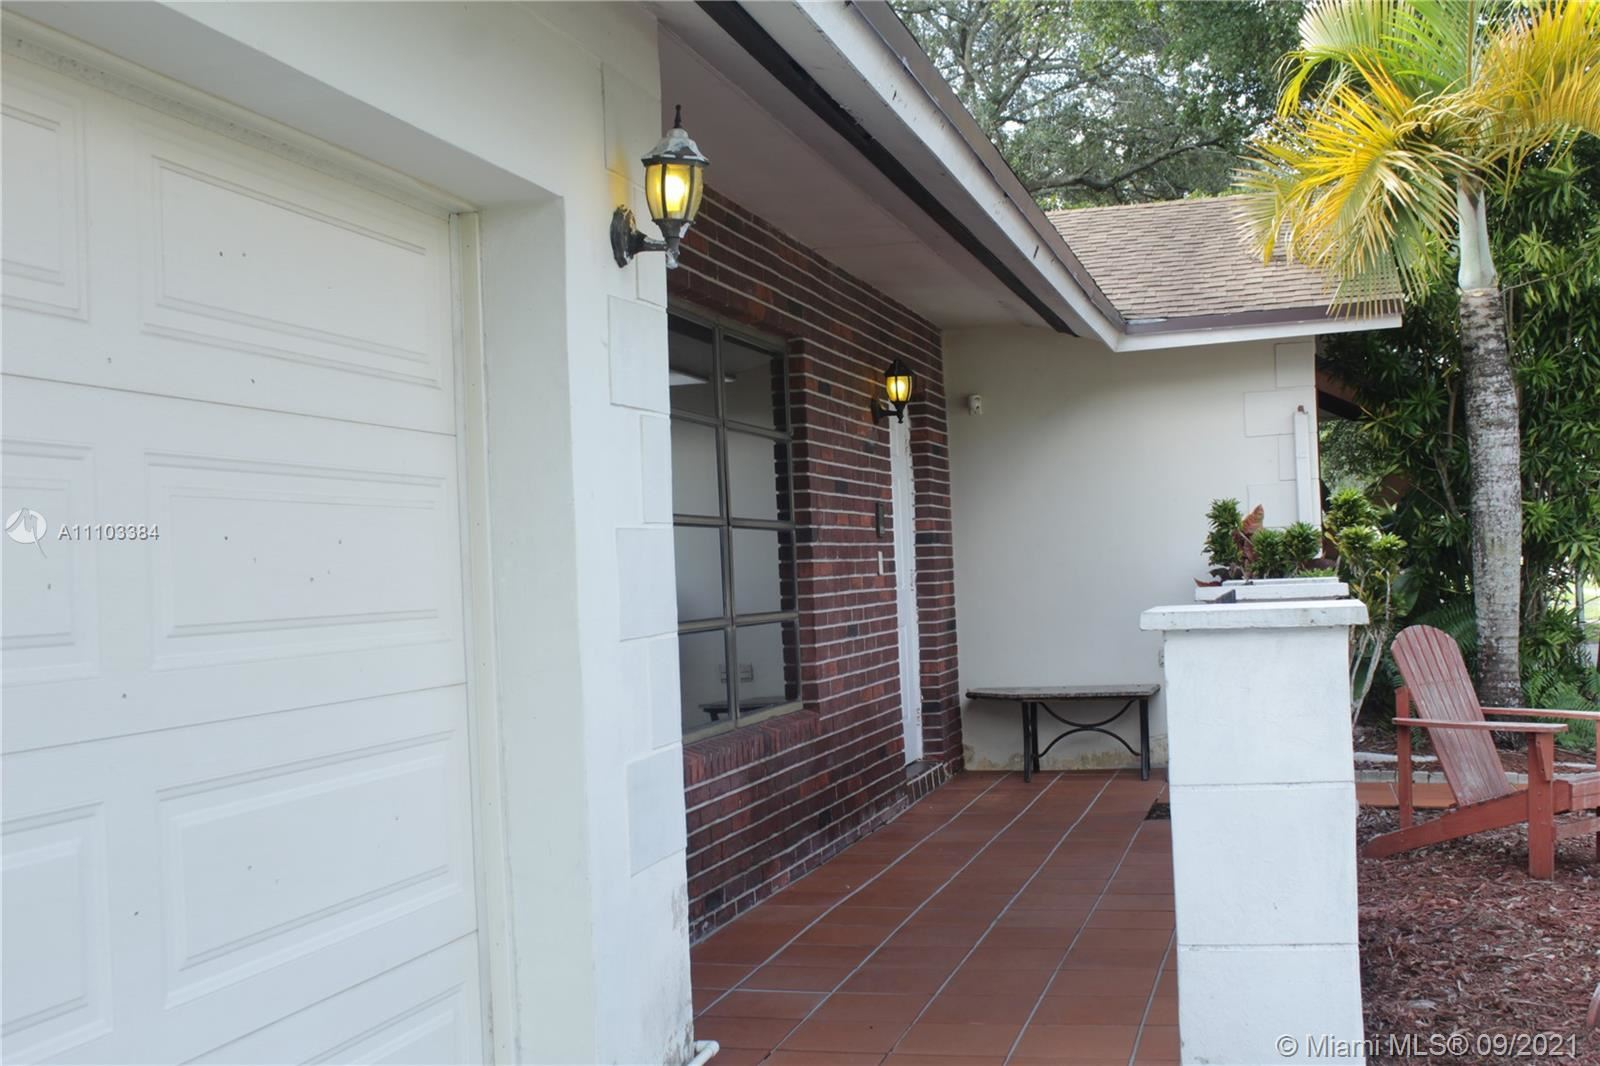 Photo of 5636 SW 118th Ave, Cooper City, FL 33330 (MLS # A11103384)